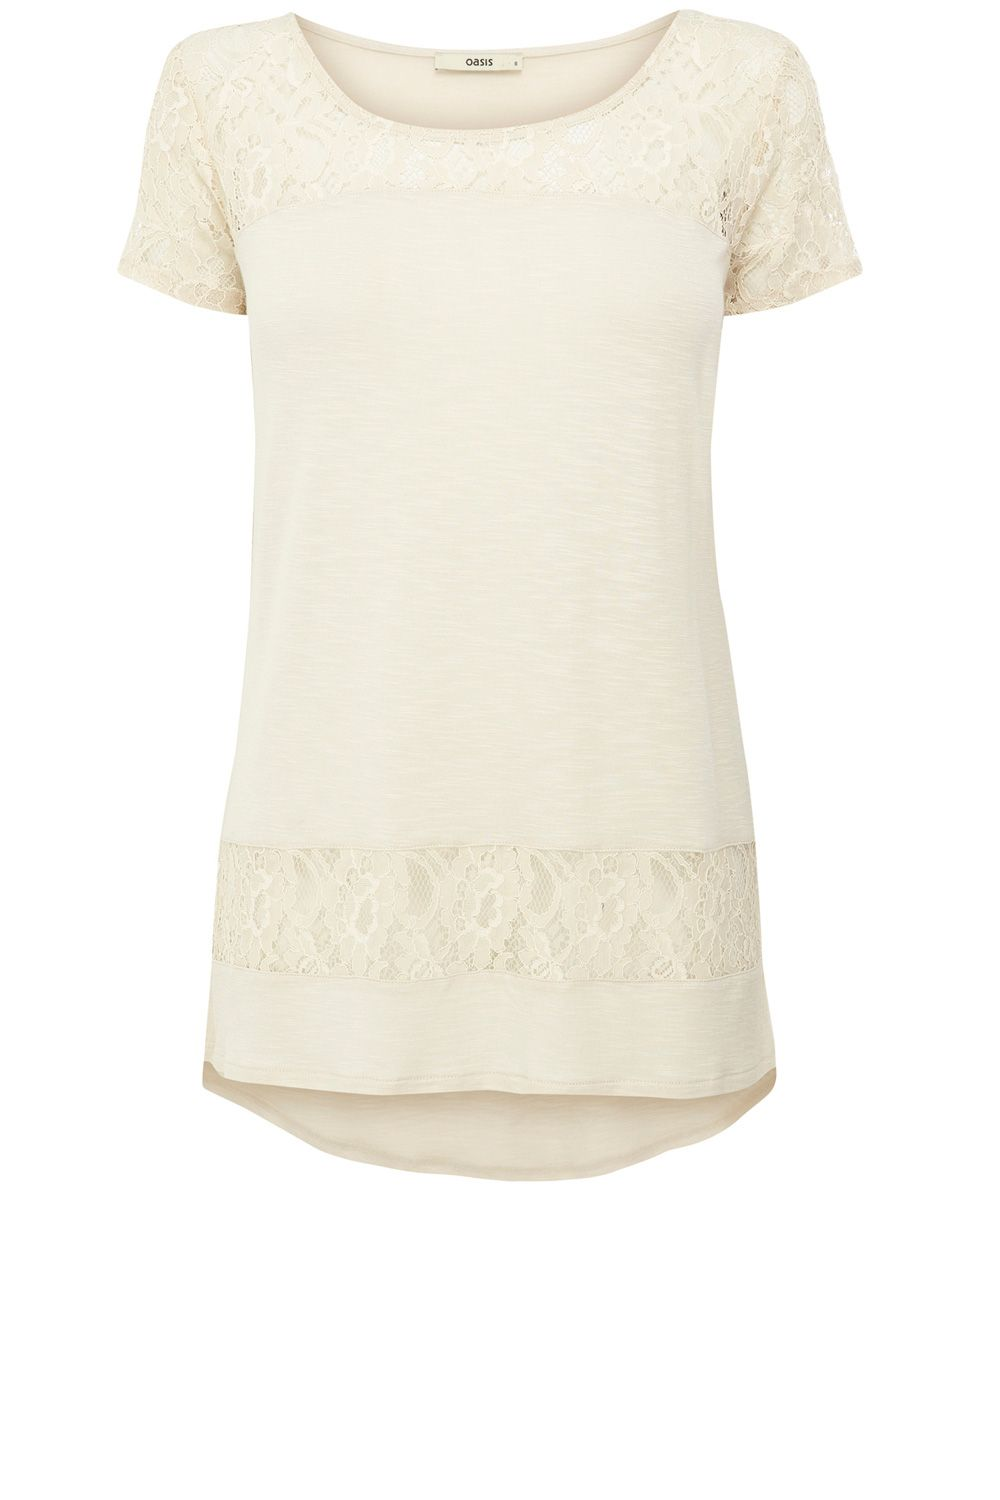 Lace mix formal tee